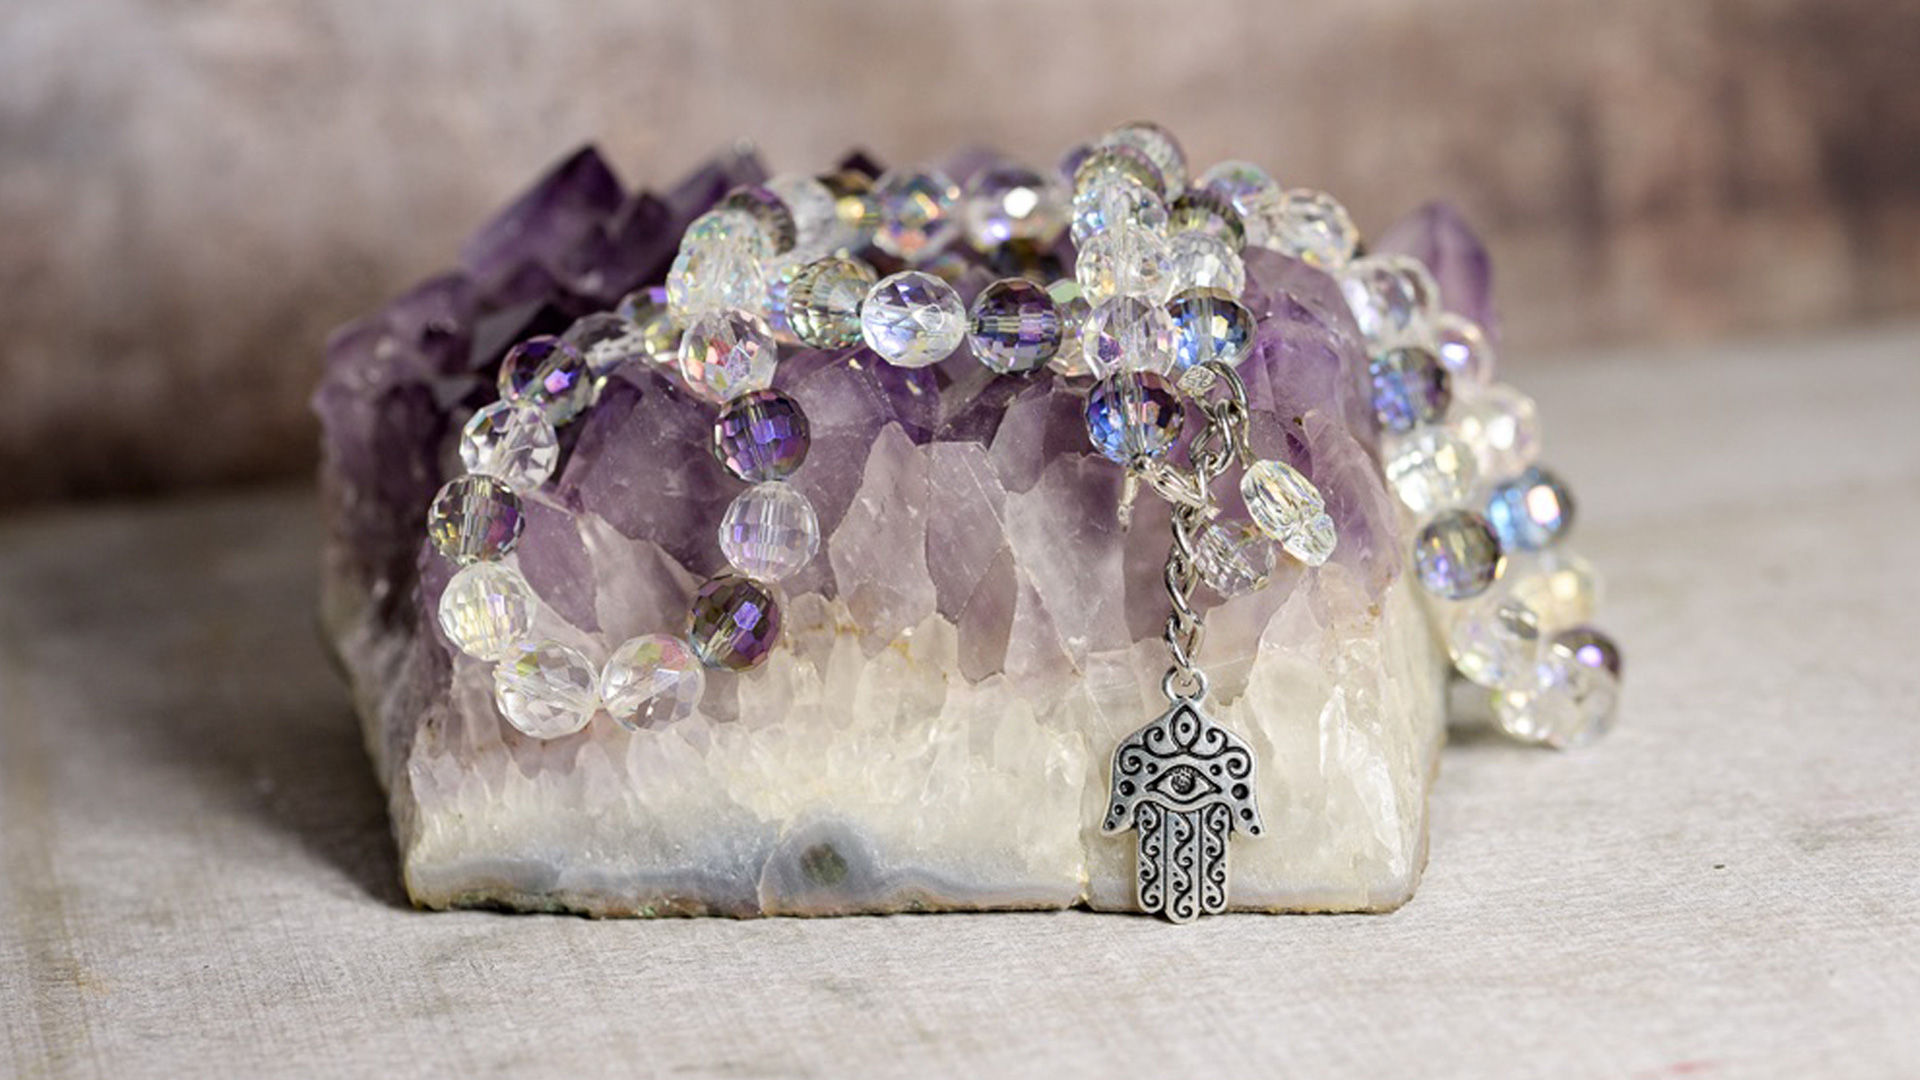 Khamsa BellyBelt with light purple and clear beads and a silver Khamsa pendent on a purple gemstone rock.